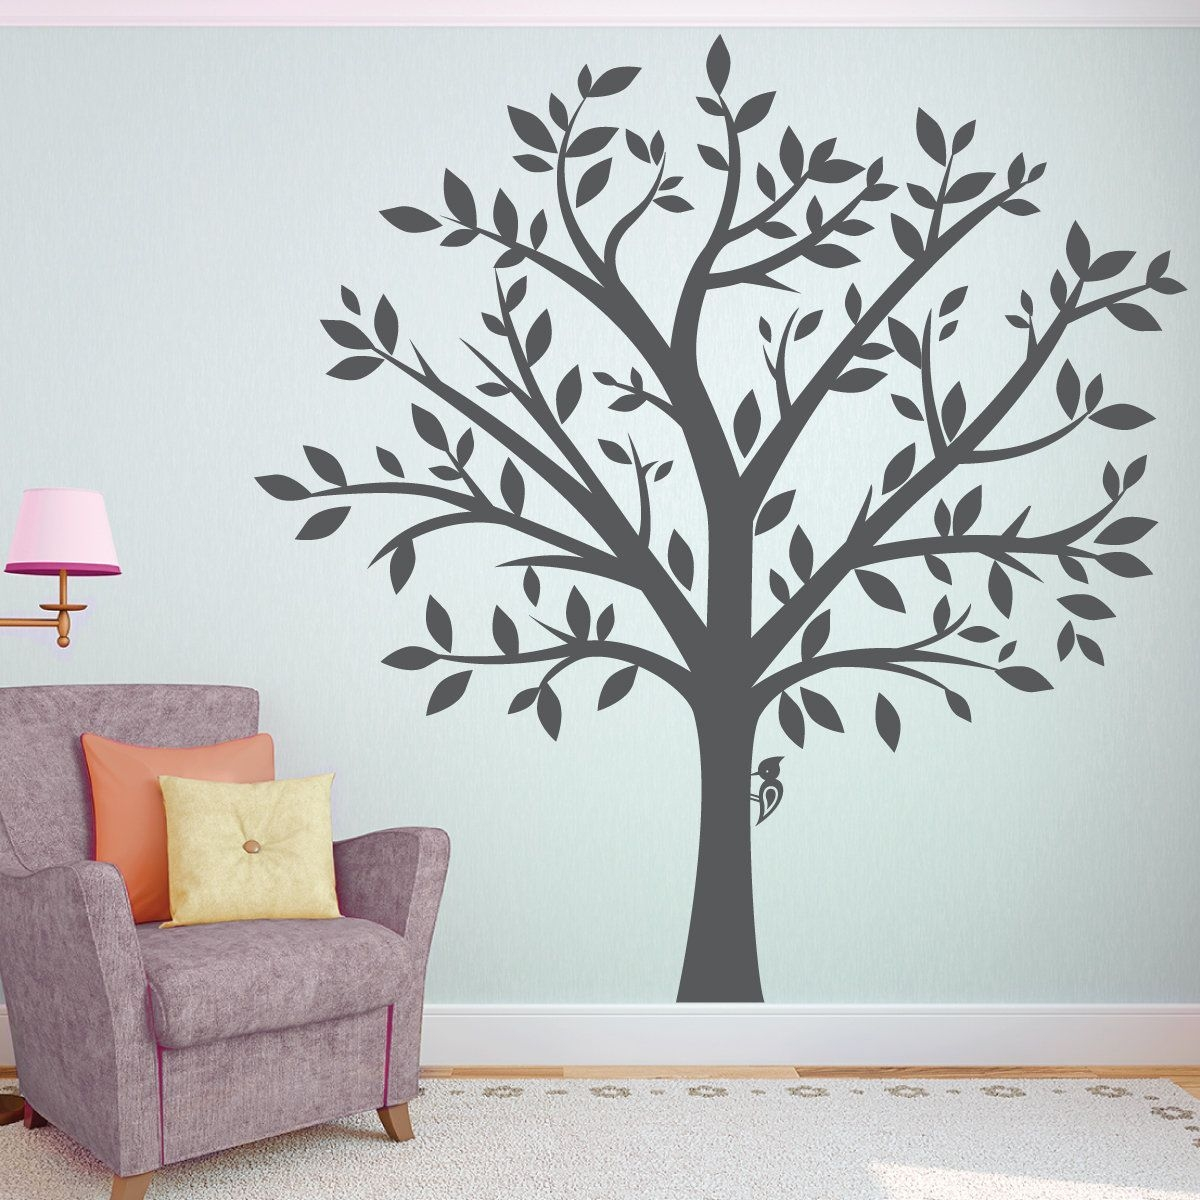 Large Family Tree Wall Decal  Family Tree Wall Family Tree Wall Decal Wall Decals